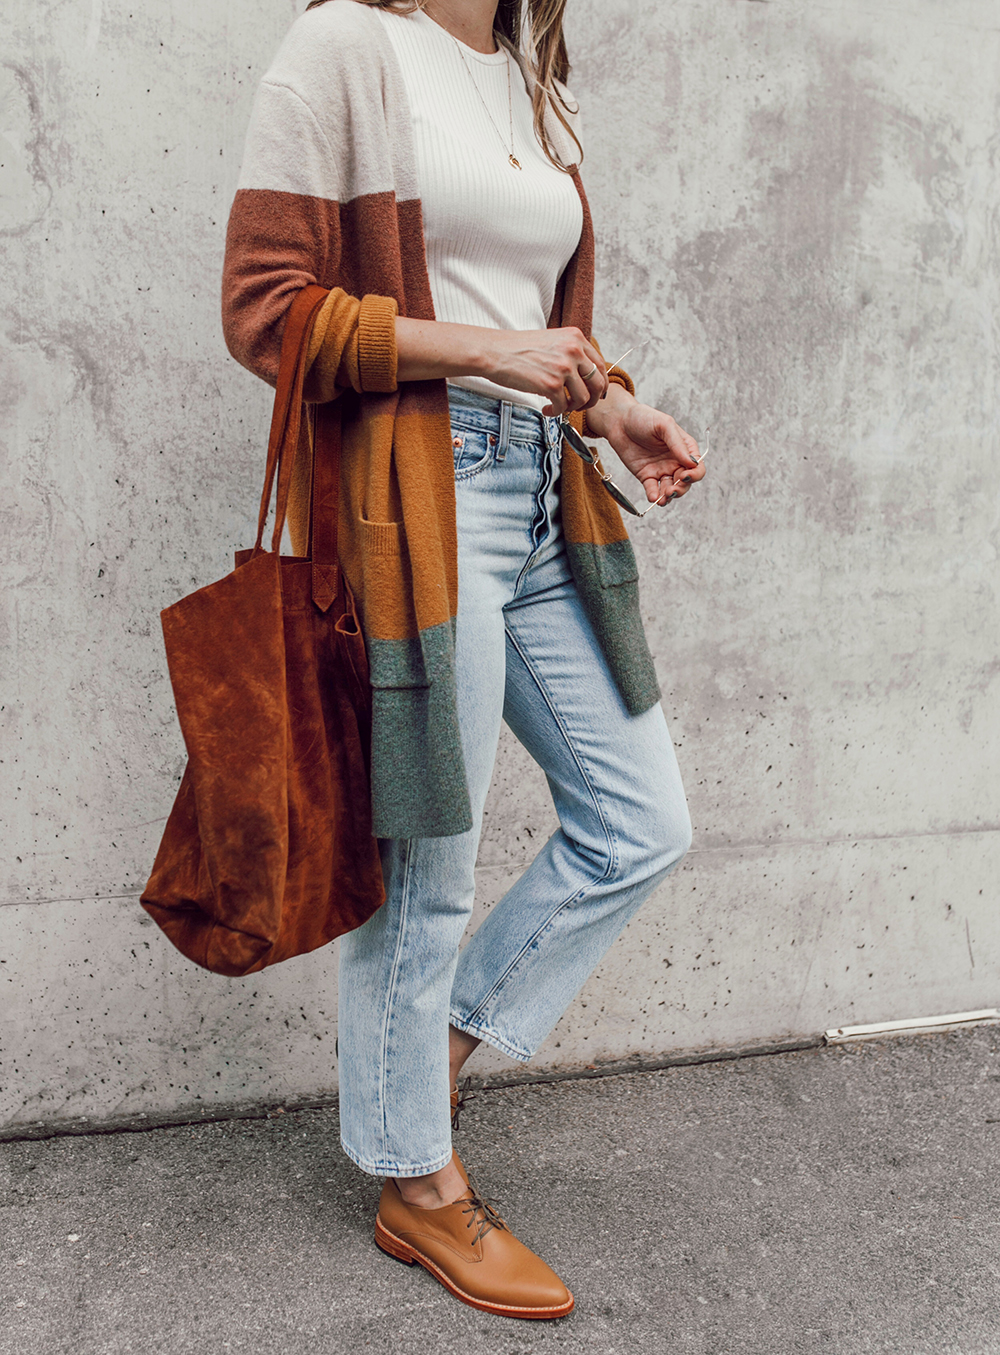 livvyland-blog-olivia-watson-austin-texas-fashion-lifestyle-blogger-nisolo-james-oxford-fall-outfit-idea-madewell-kent-cardigan-12